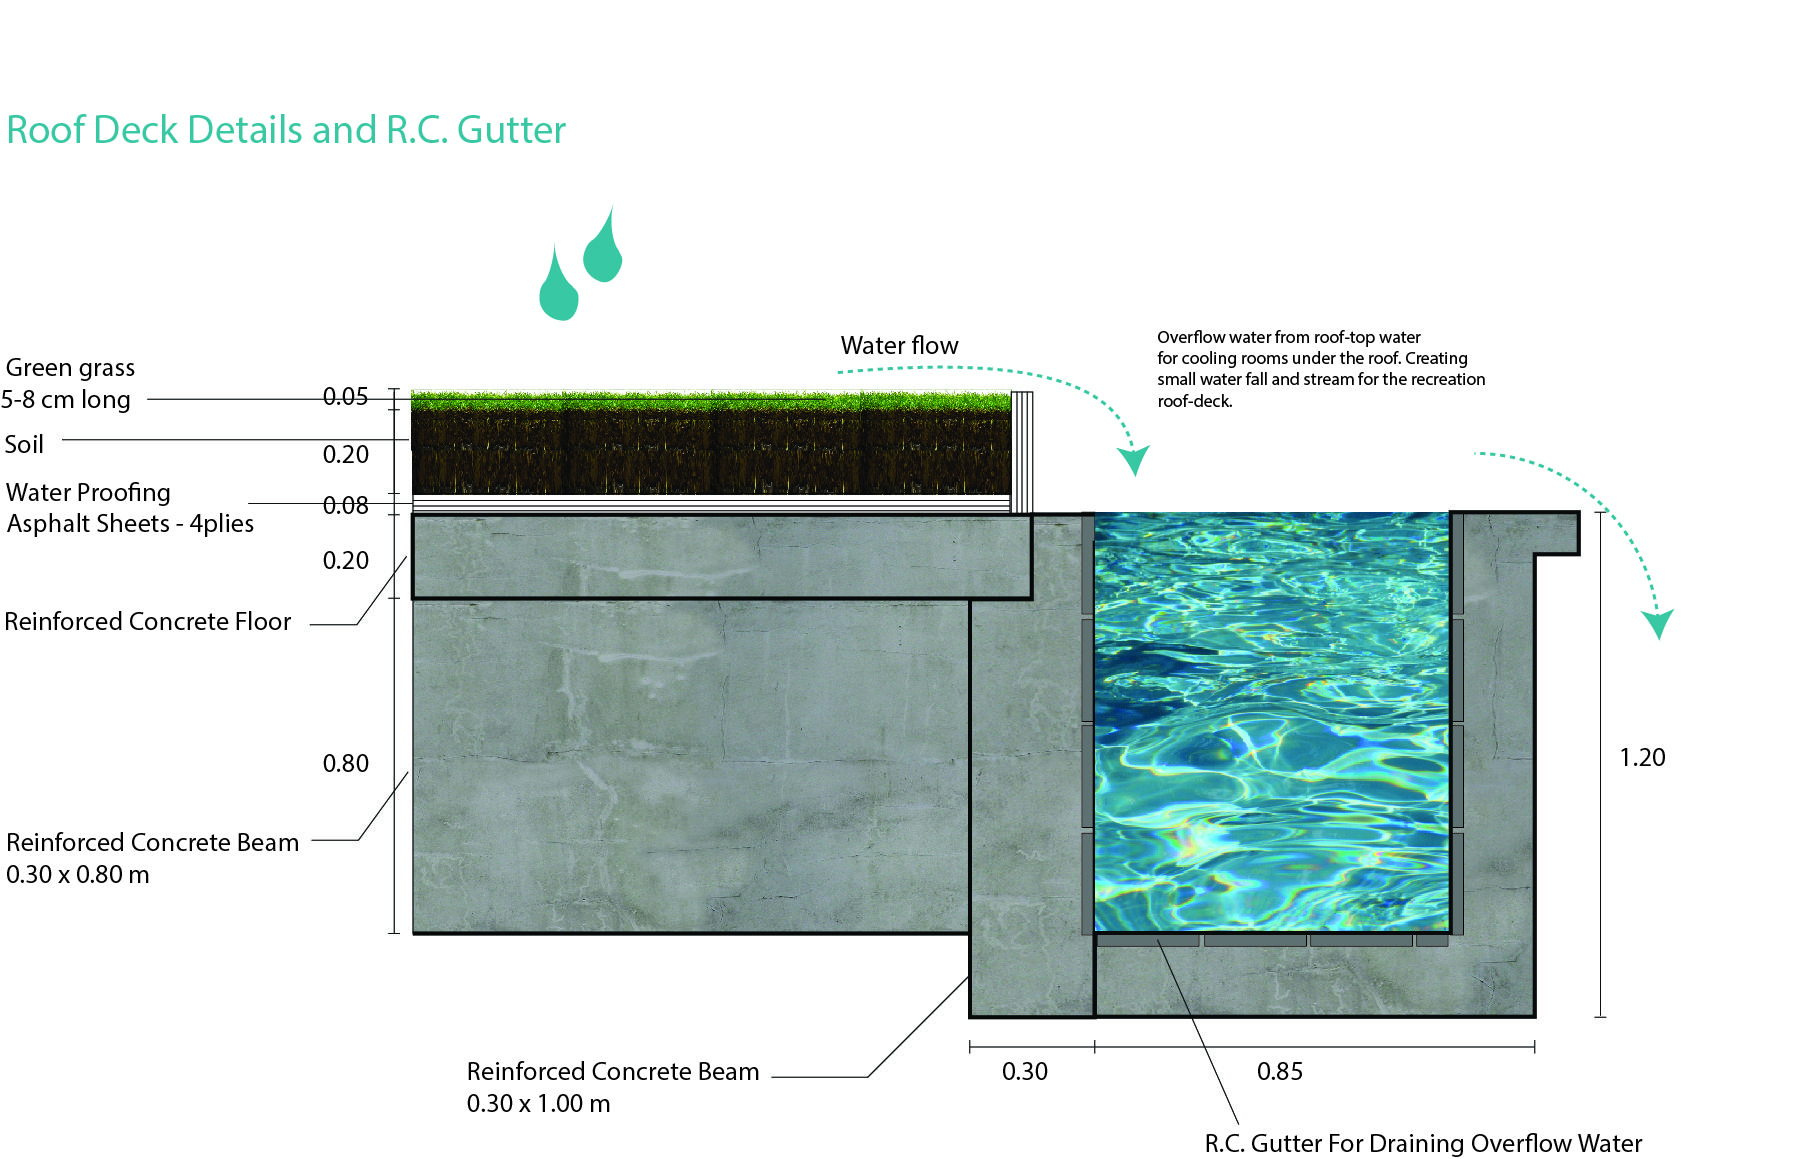 Ong Kwanruk Sukanit 54334710325 Roof Detail Diagram Shows Section Of Green Roof And Water Flow By Using Concrete As Construction Material But Green Roof Need